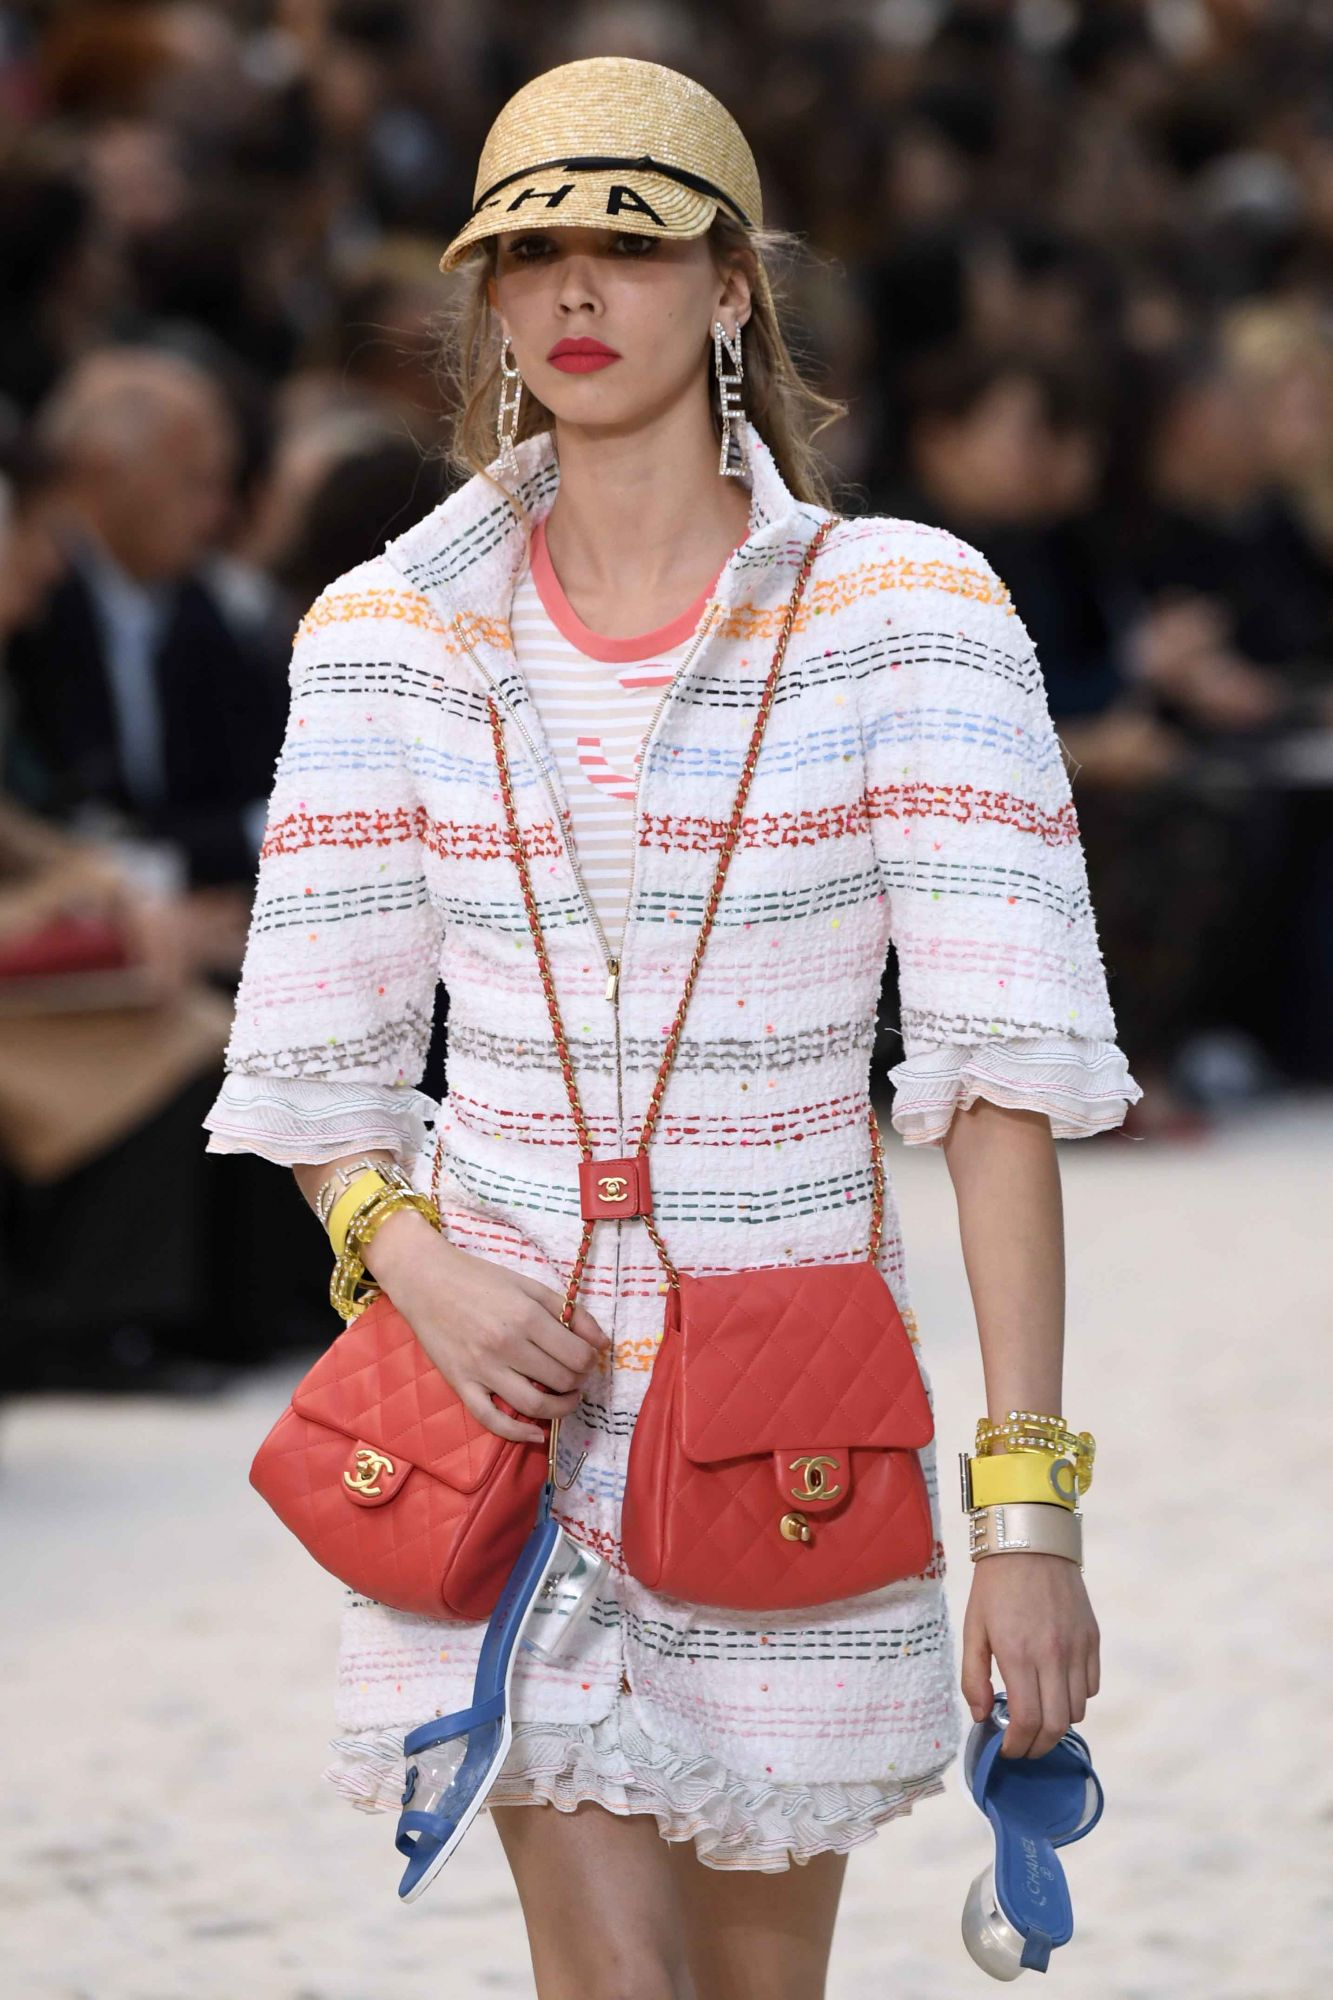 10 Of The Hottest Bags From Spring/Summer 2019 Runways